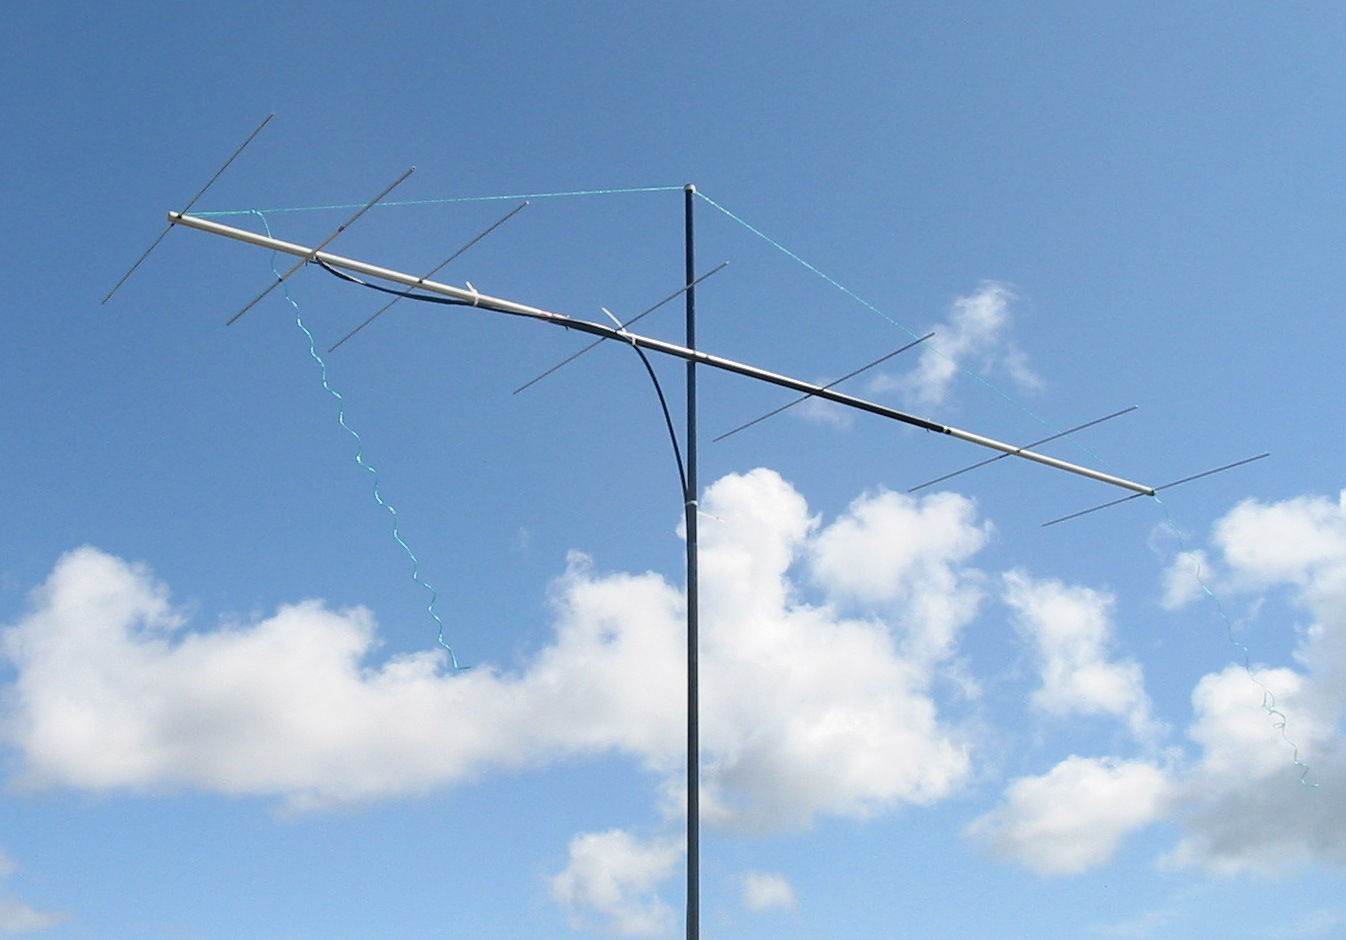 Home brew 2m SSB antenna for hill top contest Radio Wire